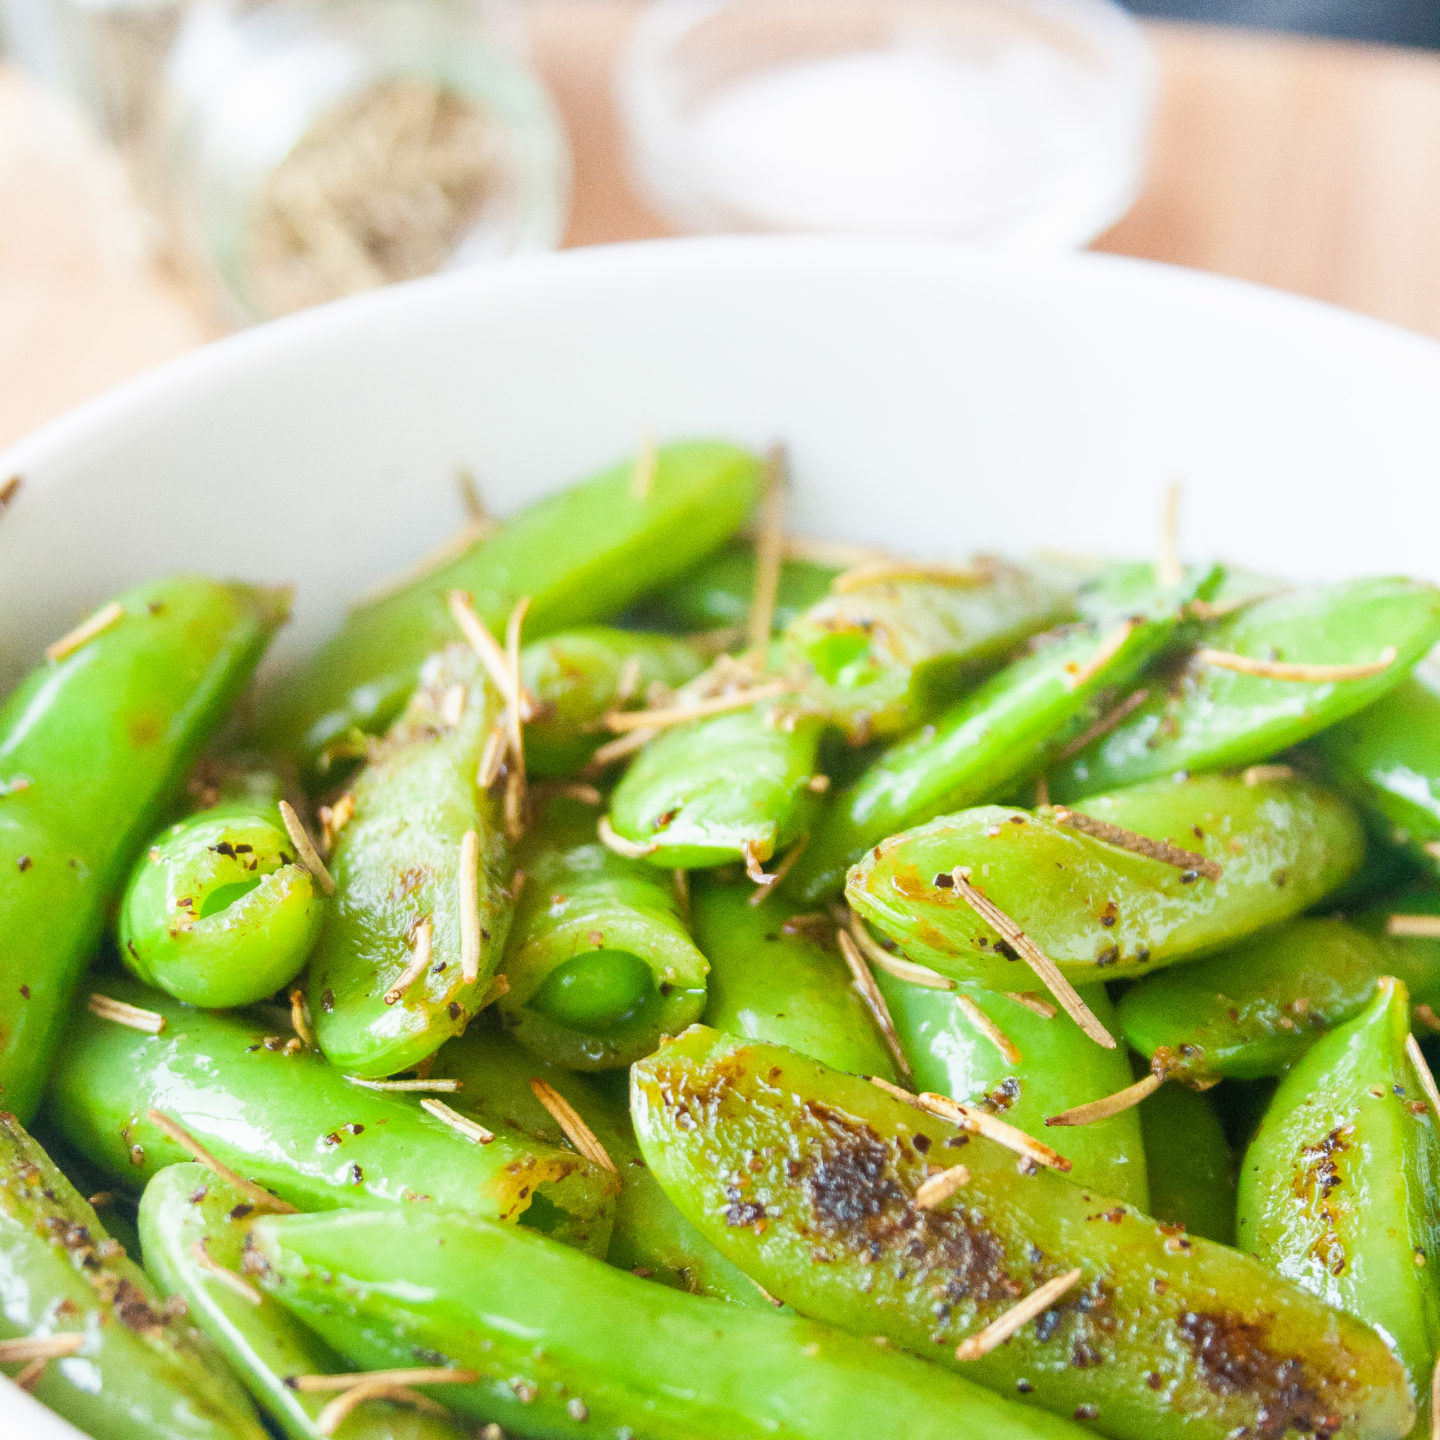 Rosemary Sea Salt Sugar Snap Peas